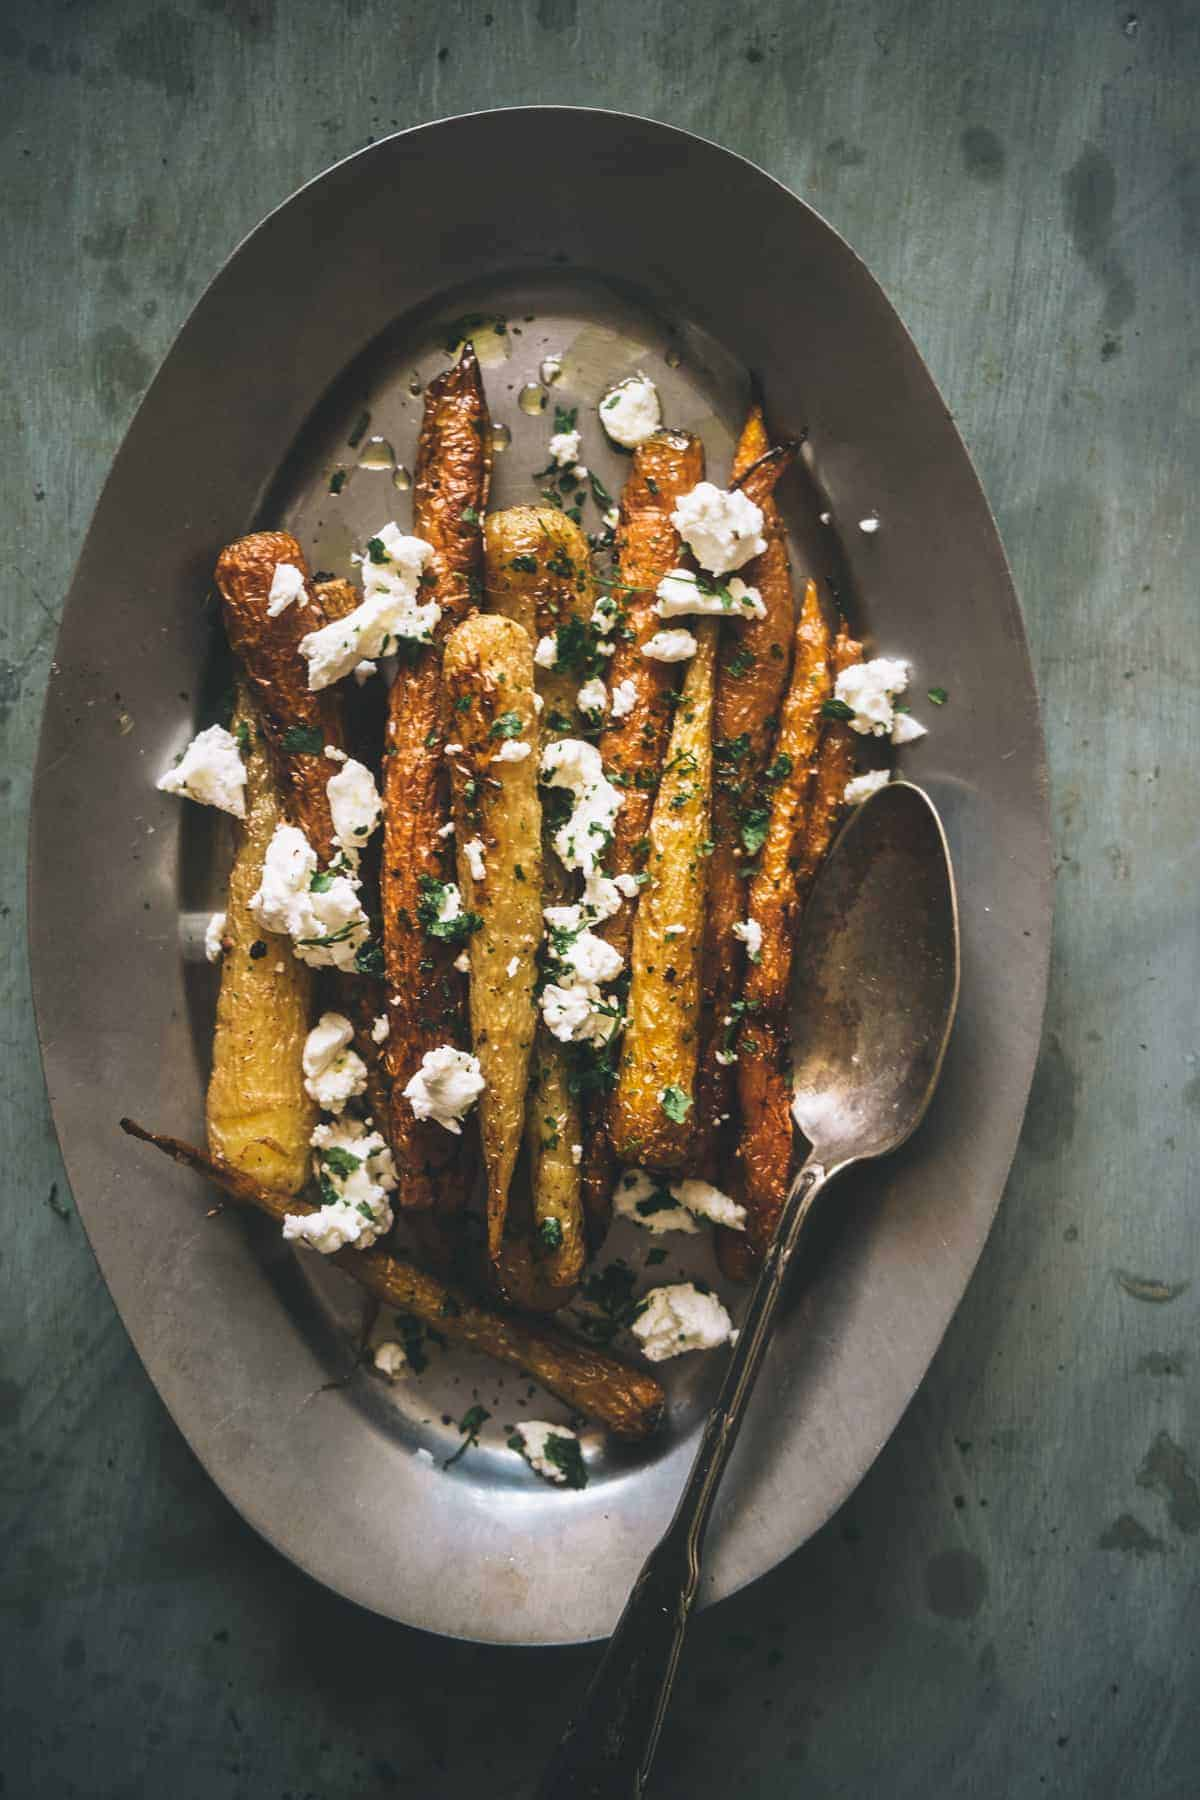 a platter of roasted carrots with ground fennel and topped with goats cheese